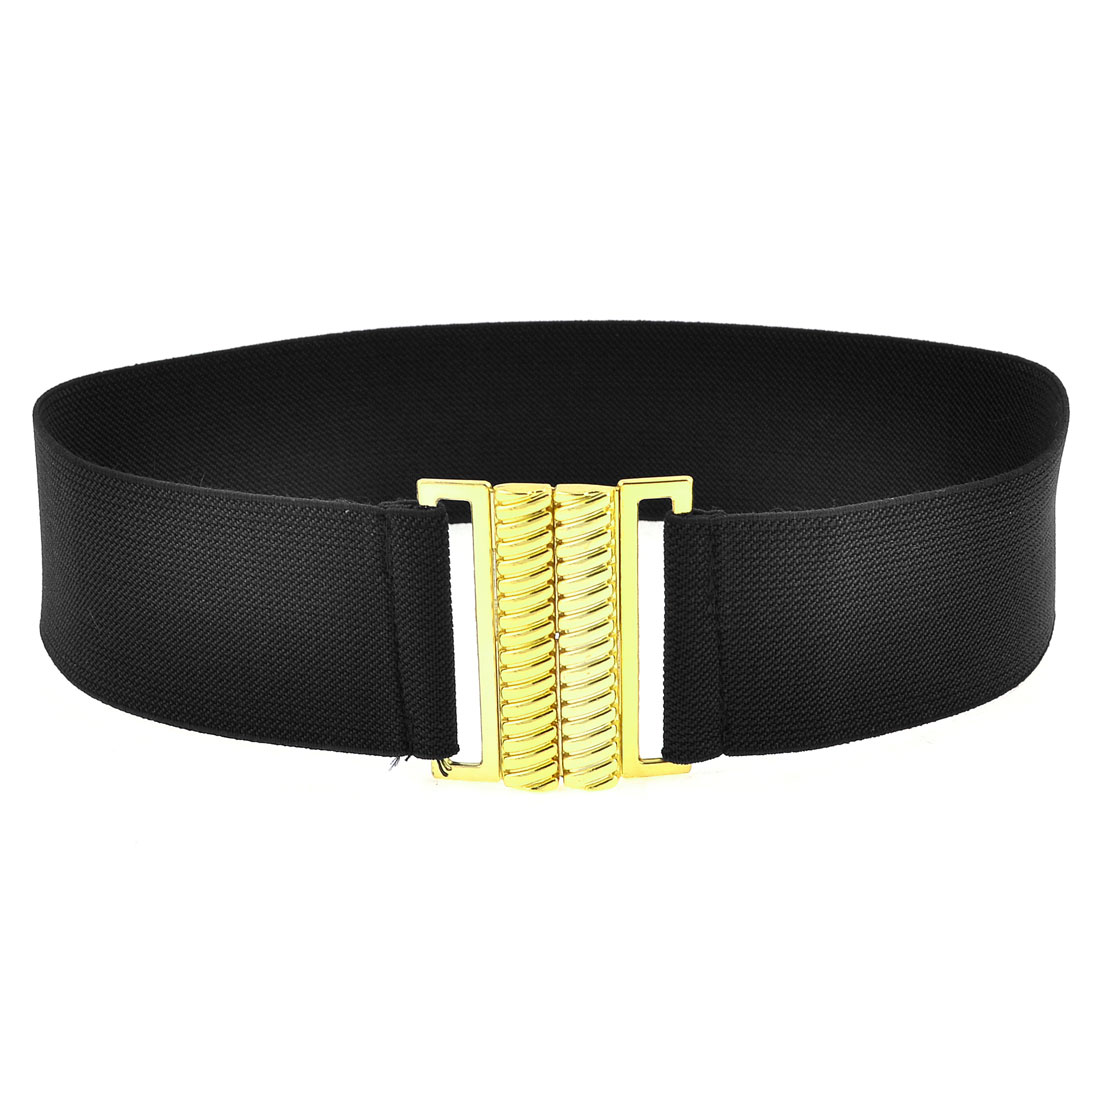 Black Elastic Band Gold Tone Screw Thread Shape Buckle Belt for Girls